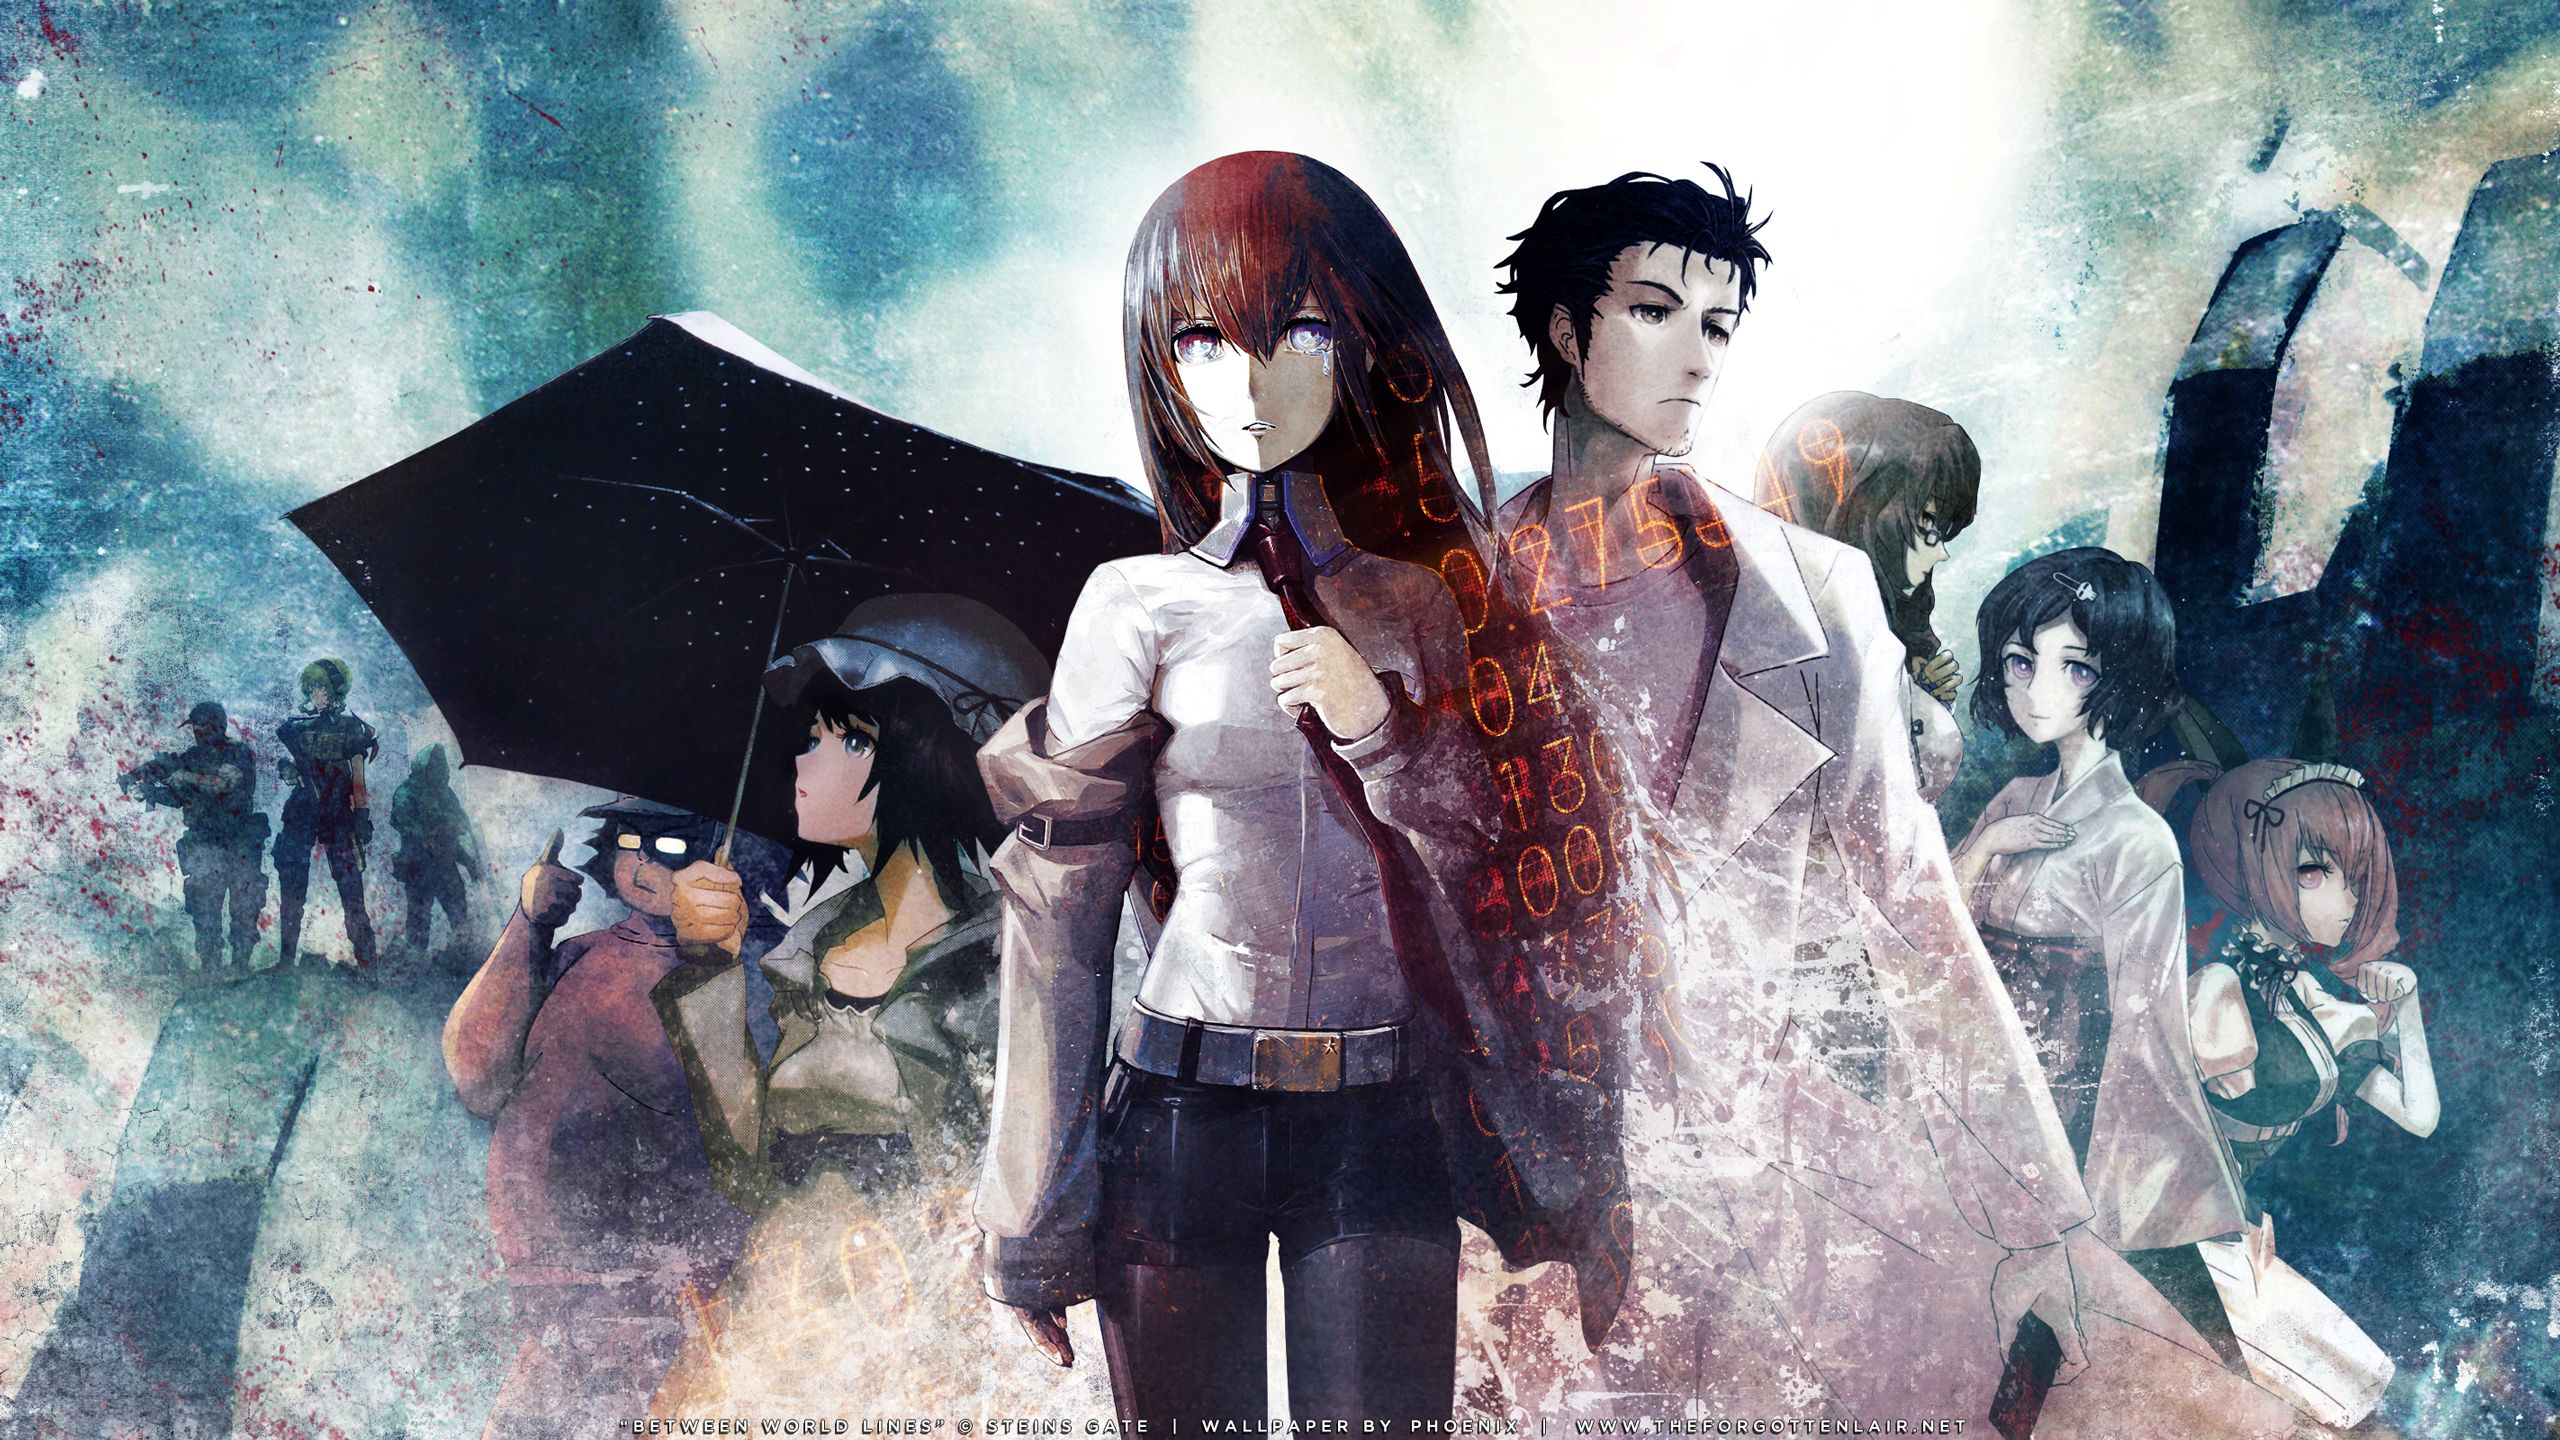 Image Result For Steins Gate Wallpaper アニメ シュタゲ 絵